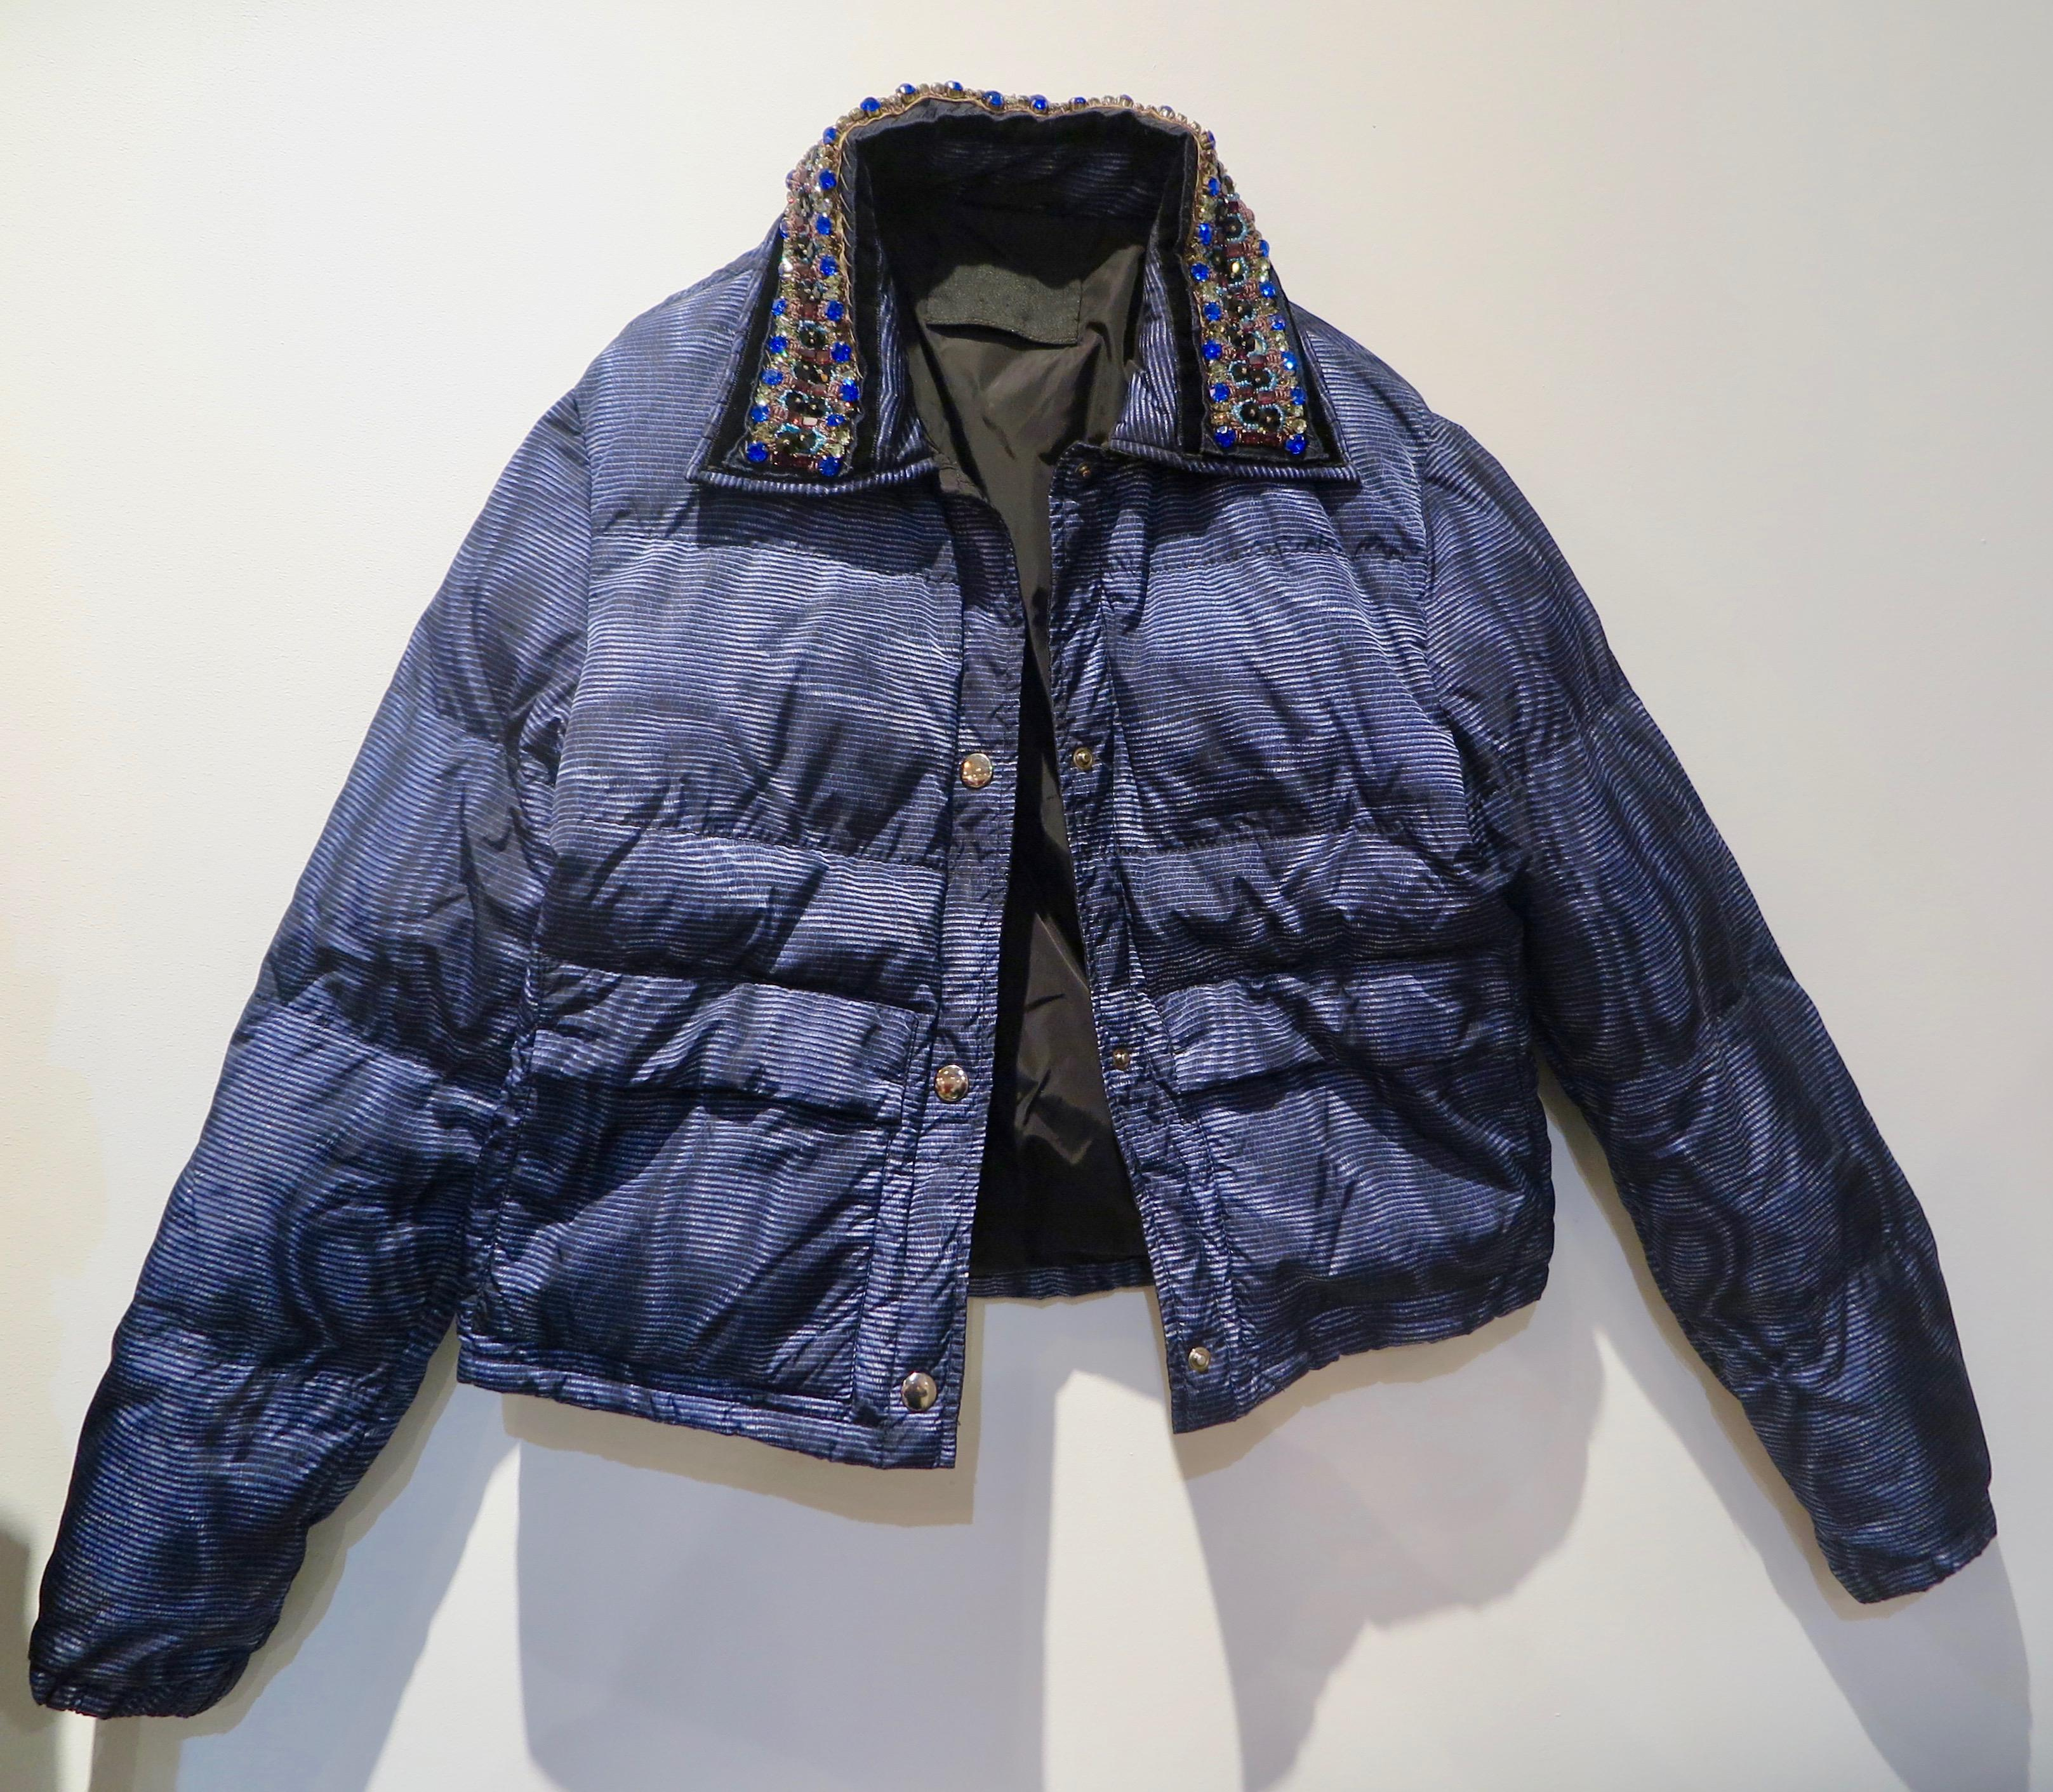 dc2cdde6ff Prada Quilted Bomber Jacket with Embroidery